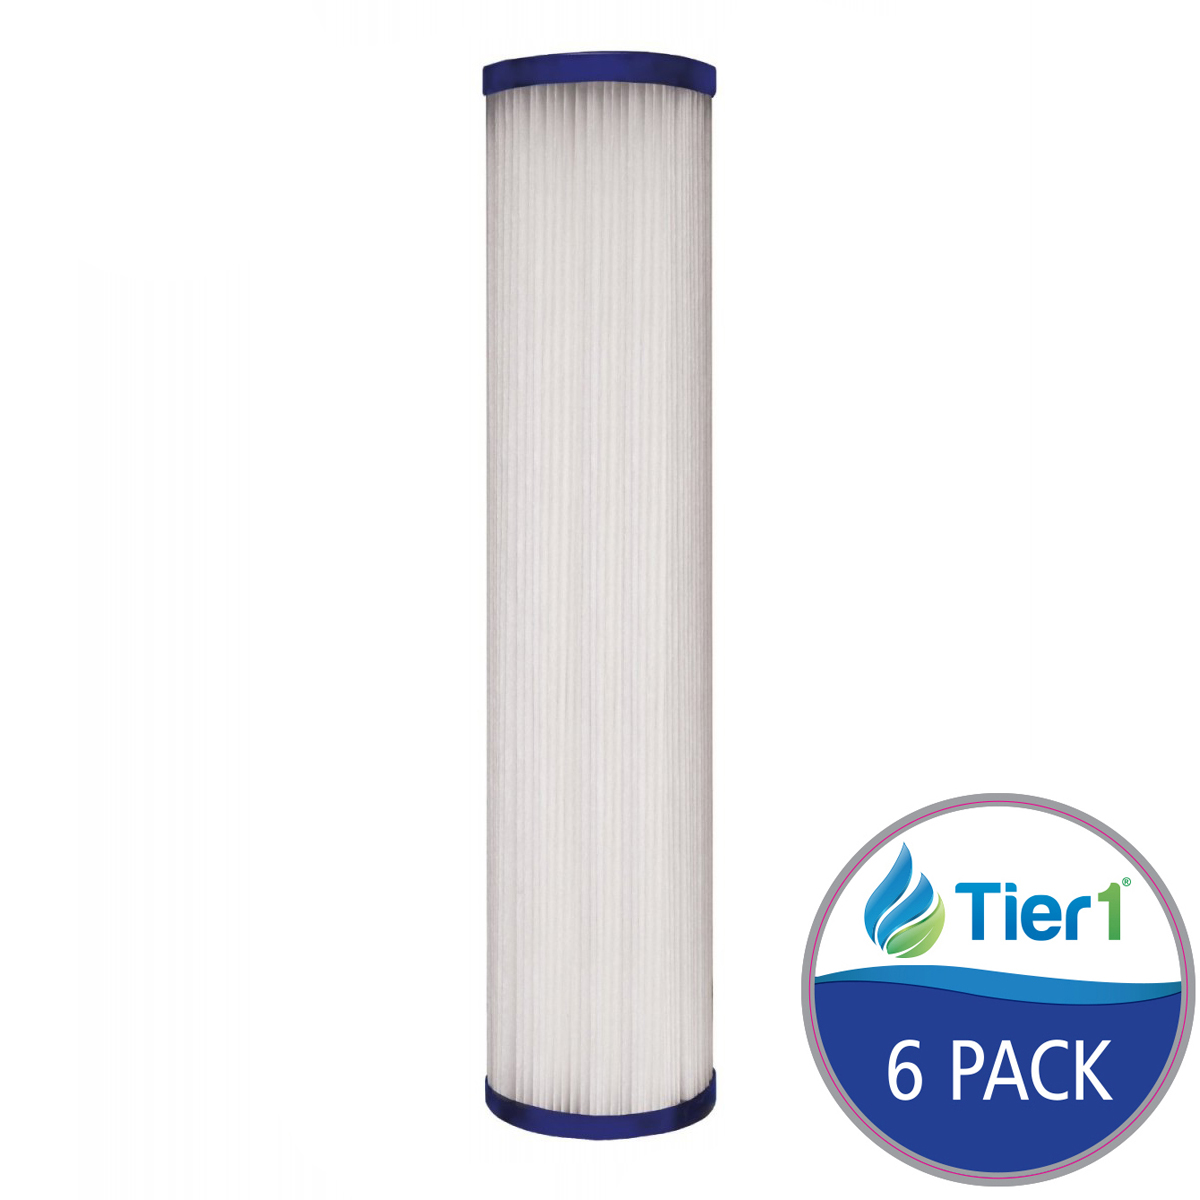 SPC-25-1020 Hydronix Comparable Pleated Sediment Water Filter by Tier1 (6-Pack) TIER1_SPC_25_1020_6_PACK